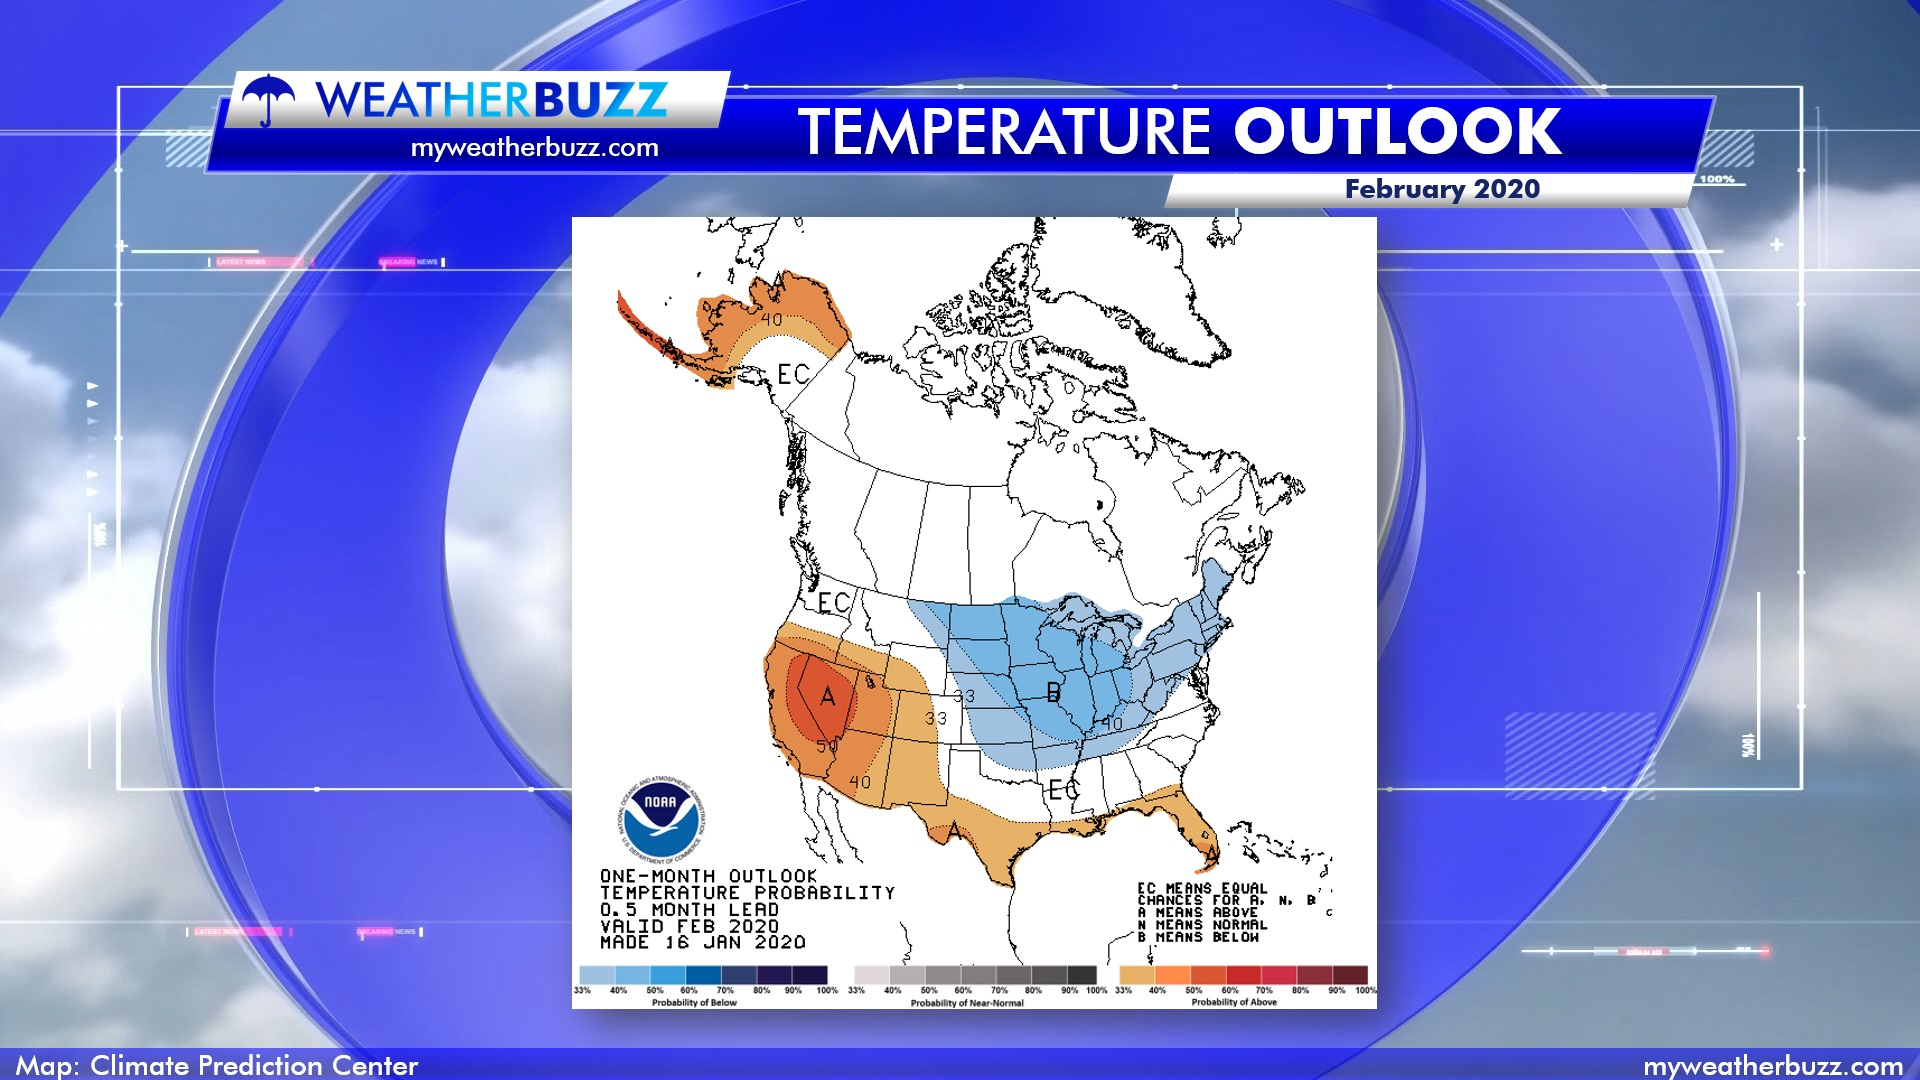 February 2020 Temperature Outlook